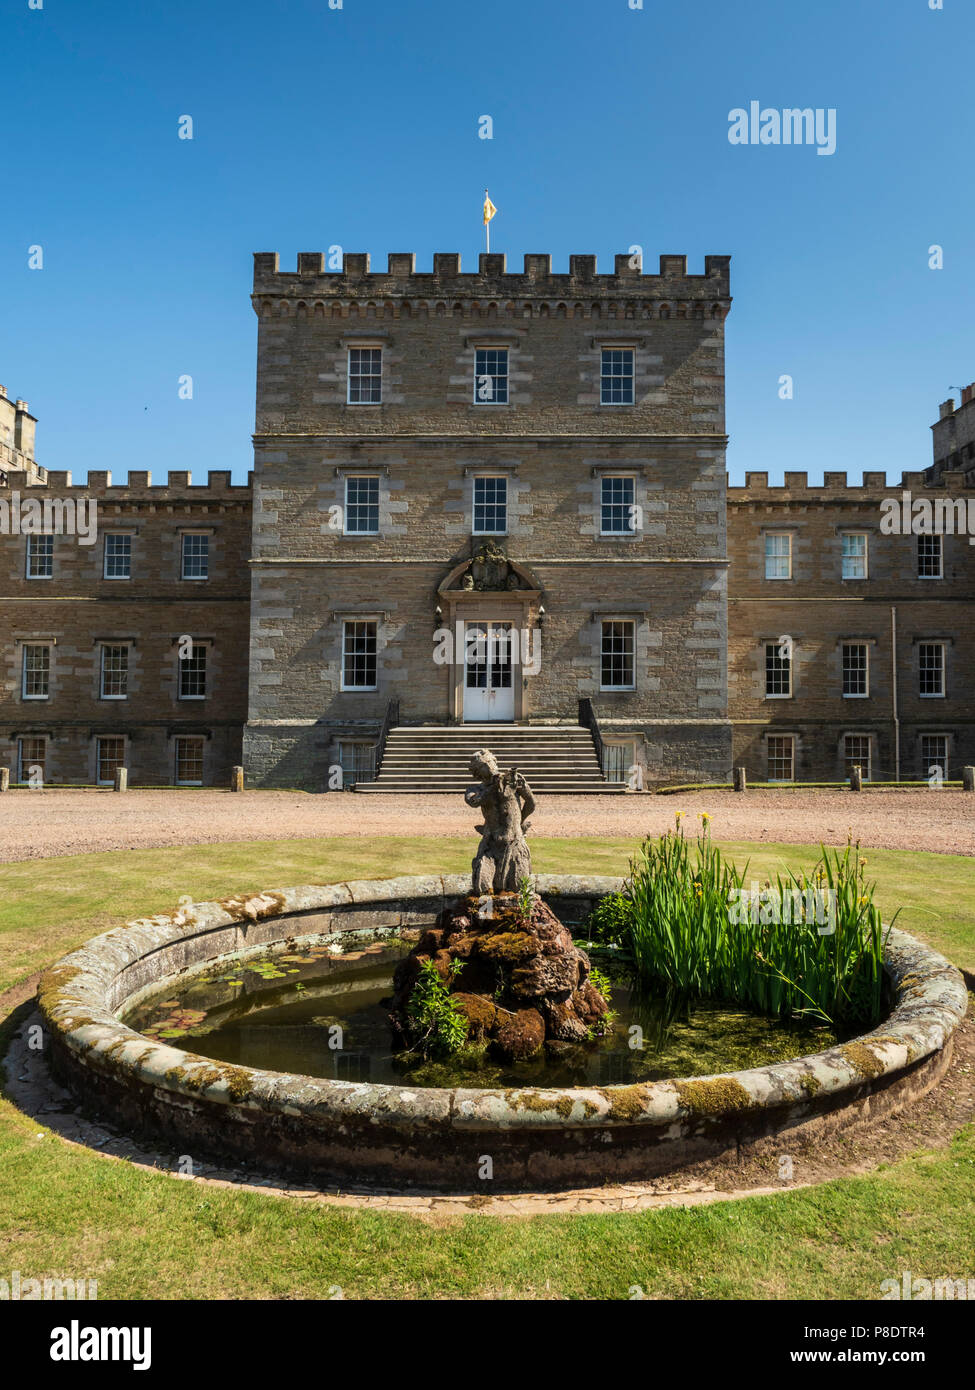 Mellerstain House, Scottish Borders home of the Earl of Haddington. - Stock Image